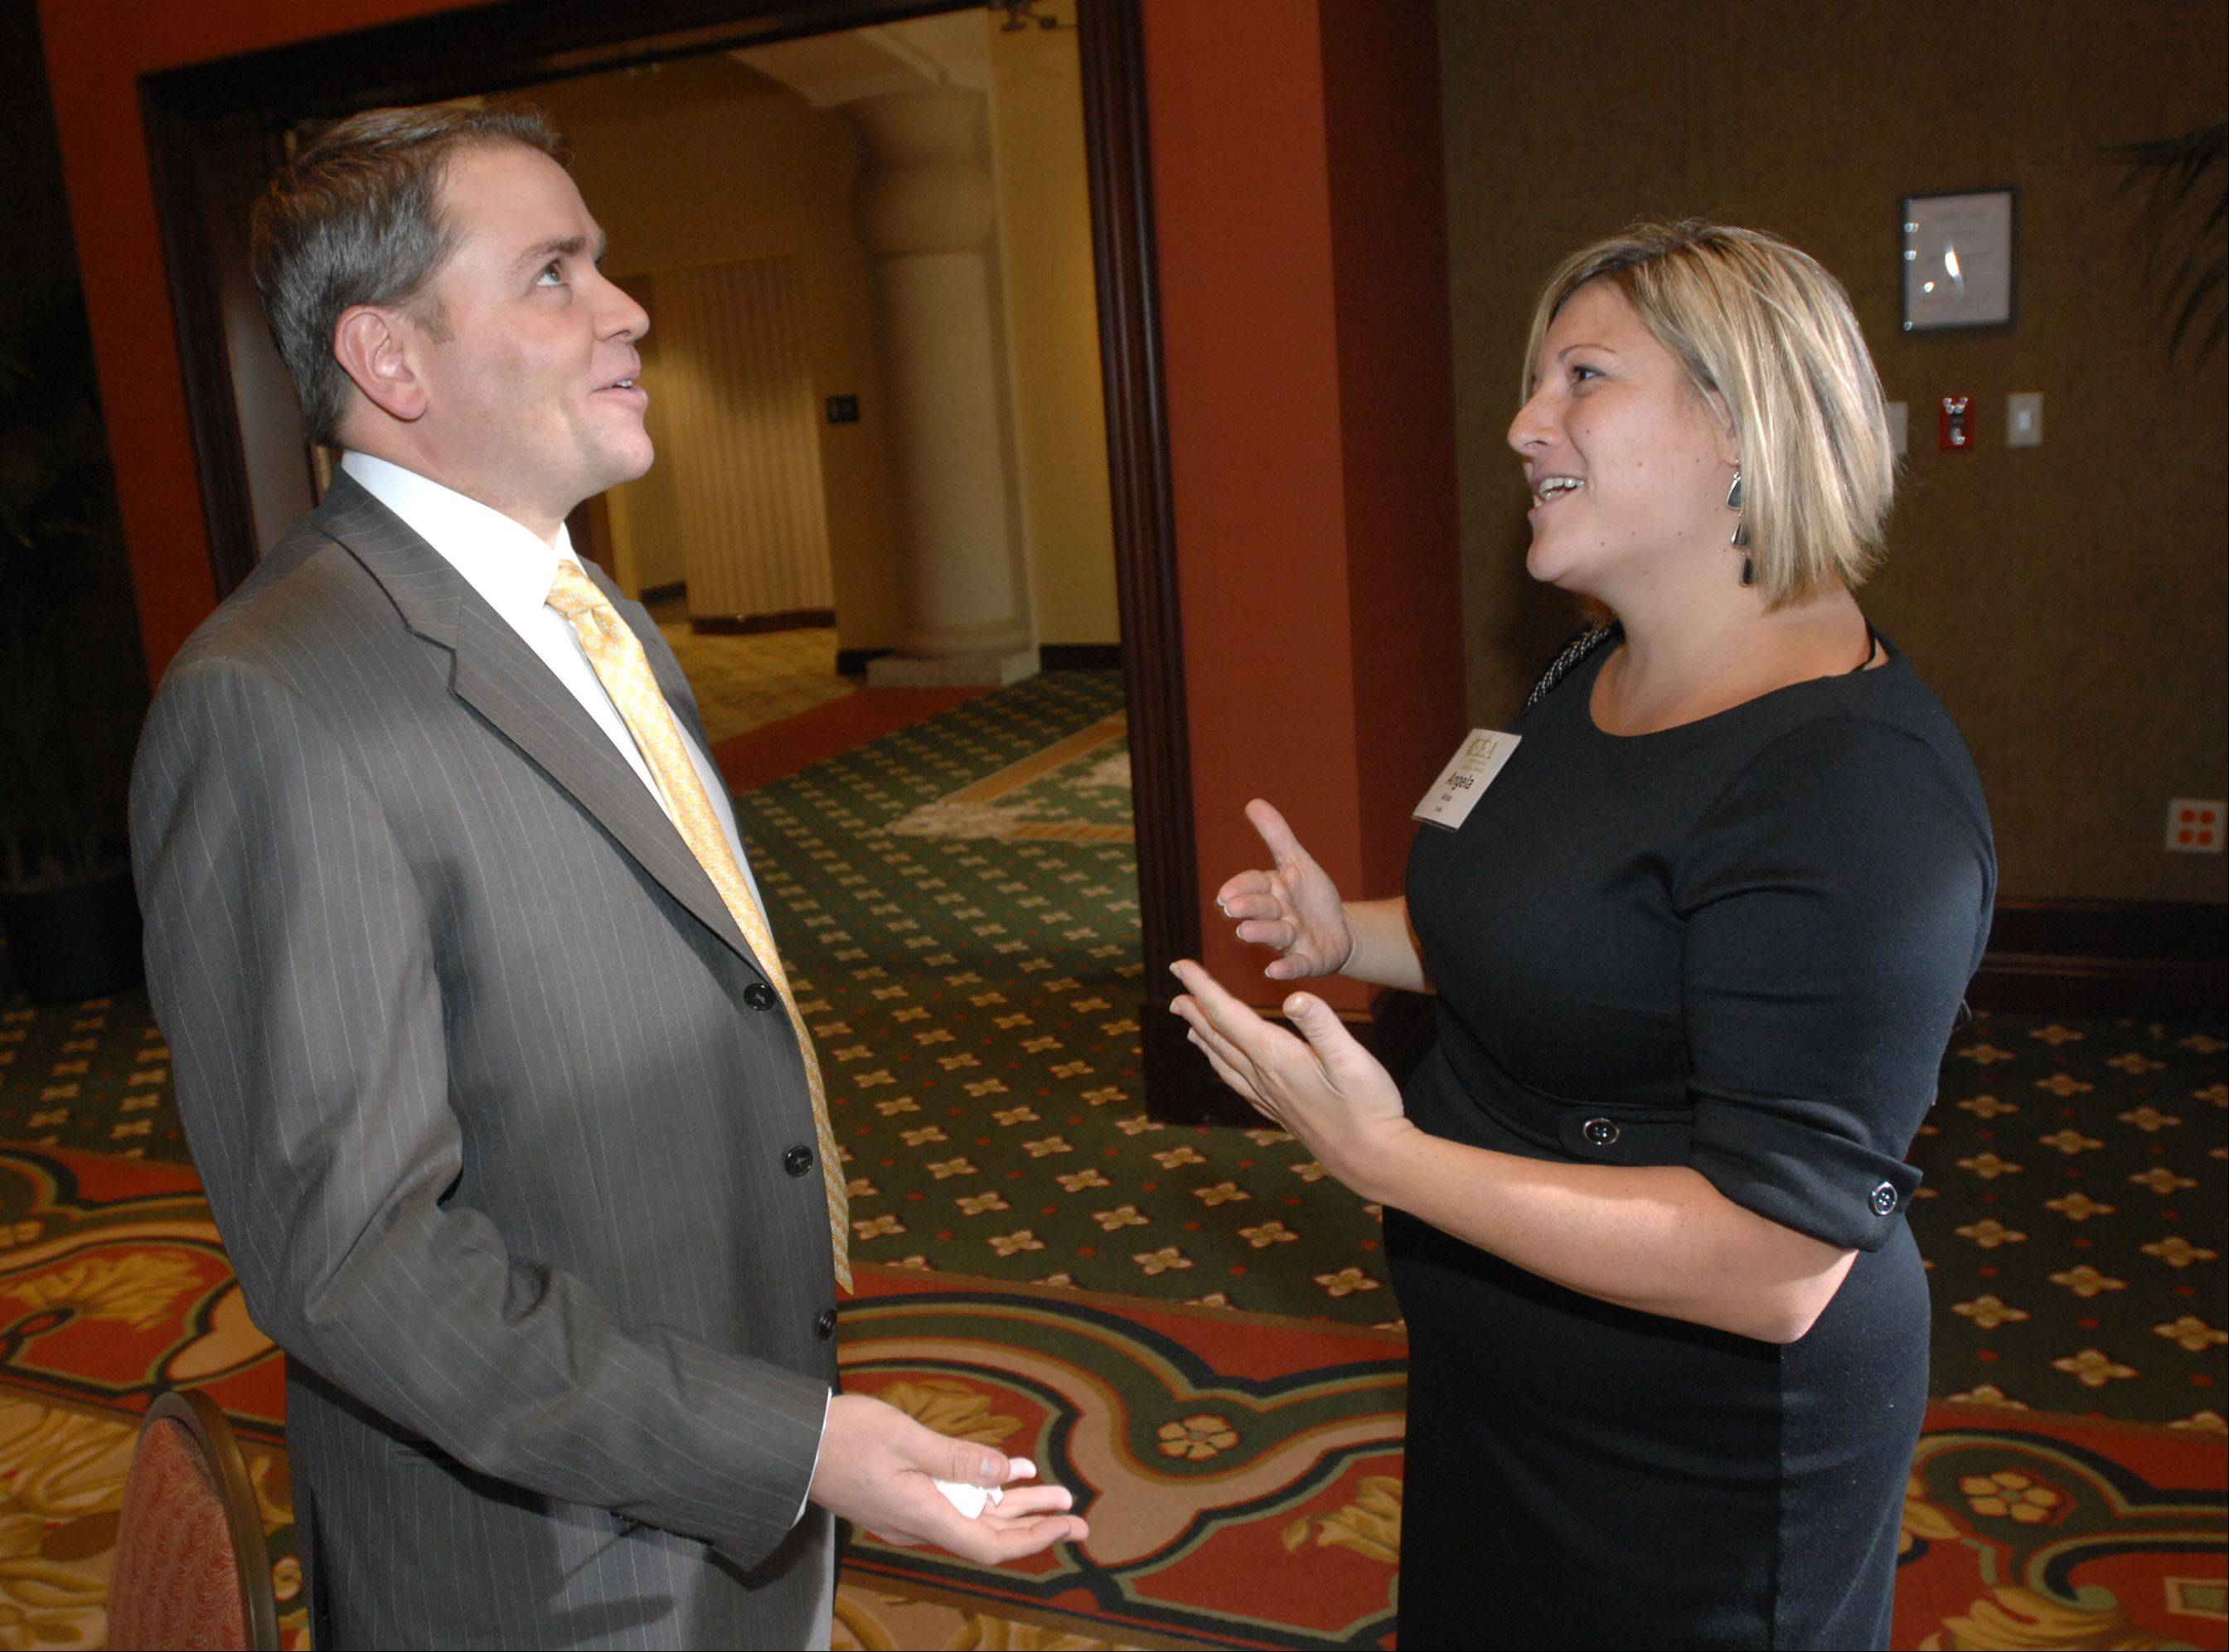 Patrick Hurley,left, and Angie Aliota, both of the DuPage County Bar Association, chat during the 13th Annual Entrepreneurial Excellence Awards at Medinah Banquets in Addison Thursday.